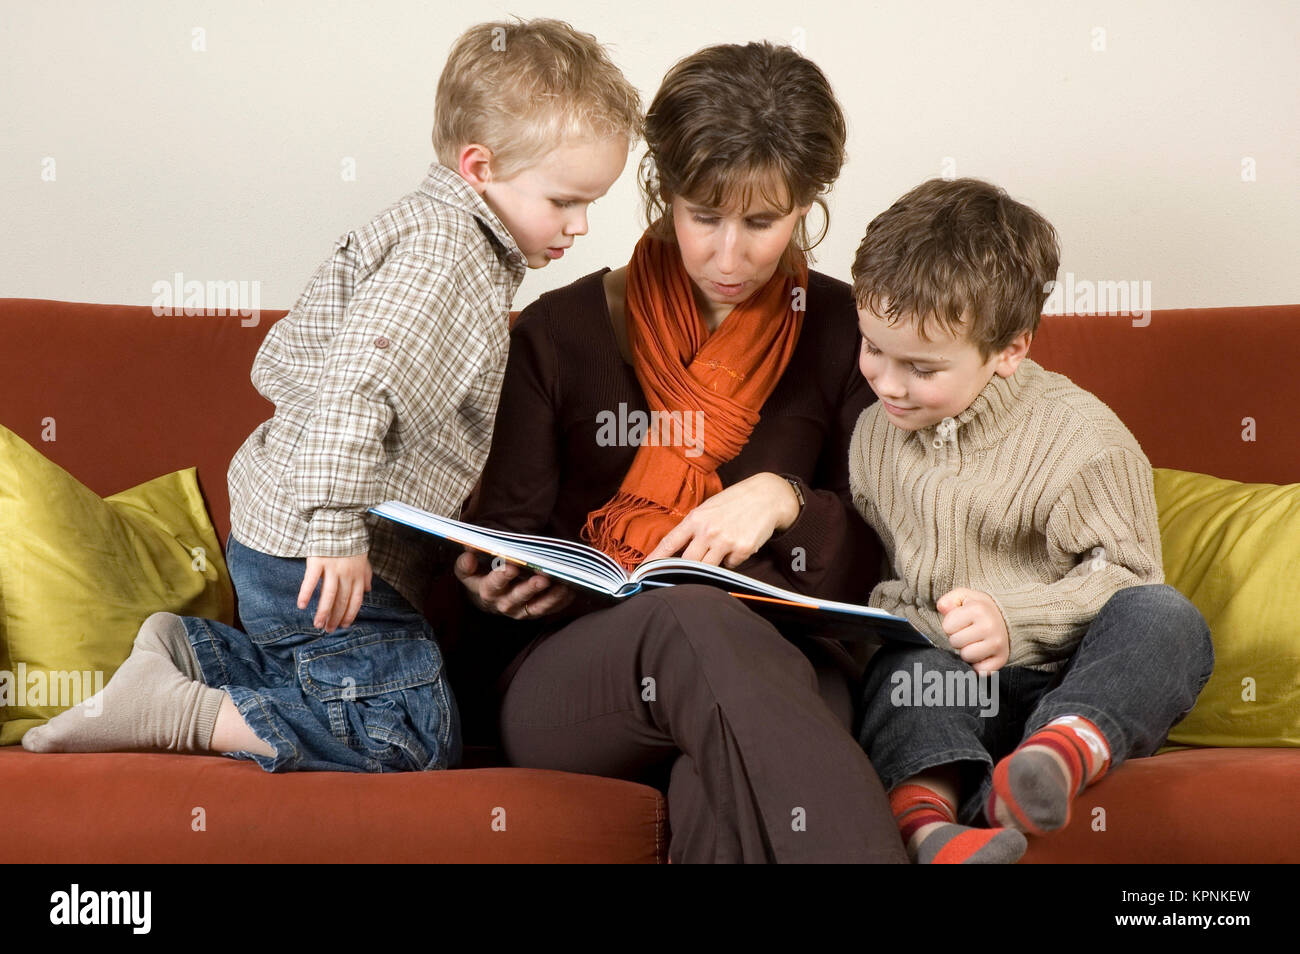 Mother And Two Sons Reading A Book 1 - Stock Image